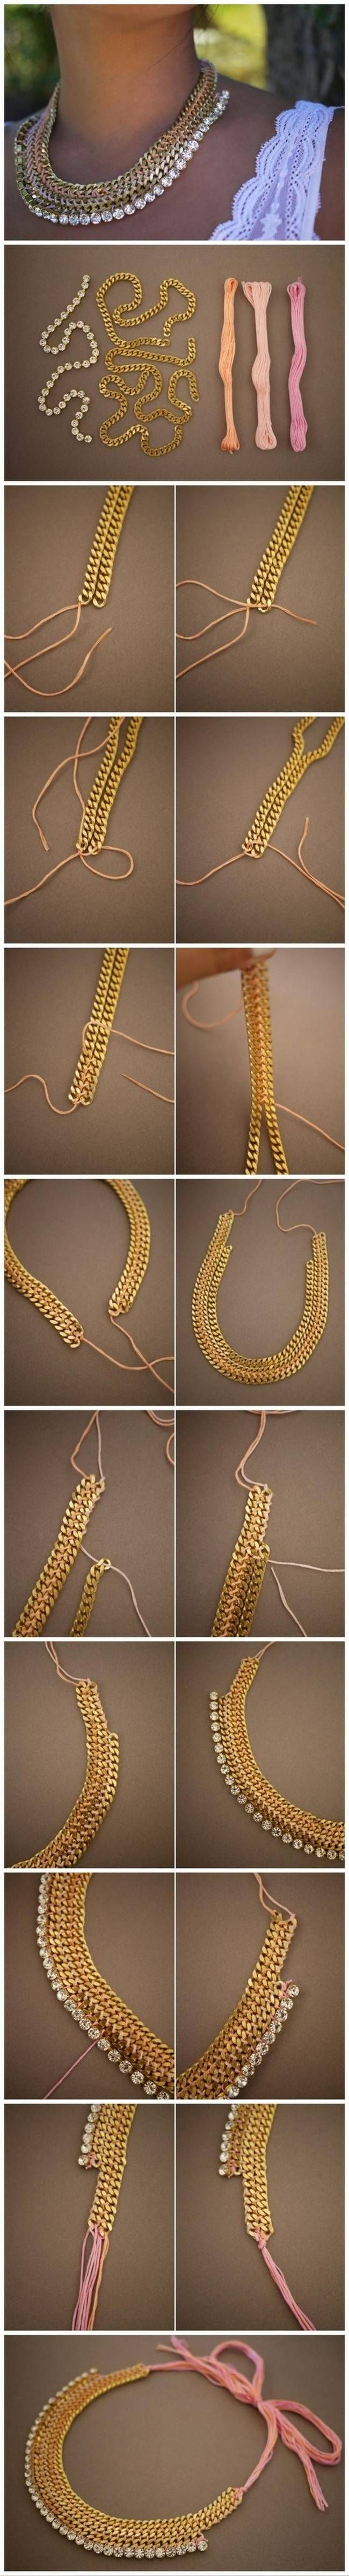 10 Amazing DIY Necklaces Tutorials | Planet of Women- Health, Fashion & Beauty